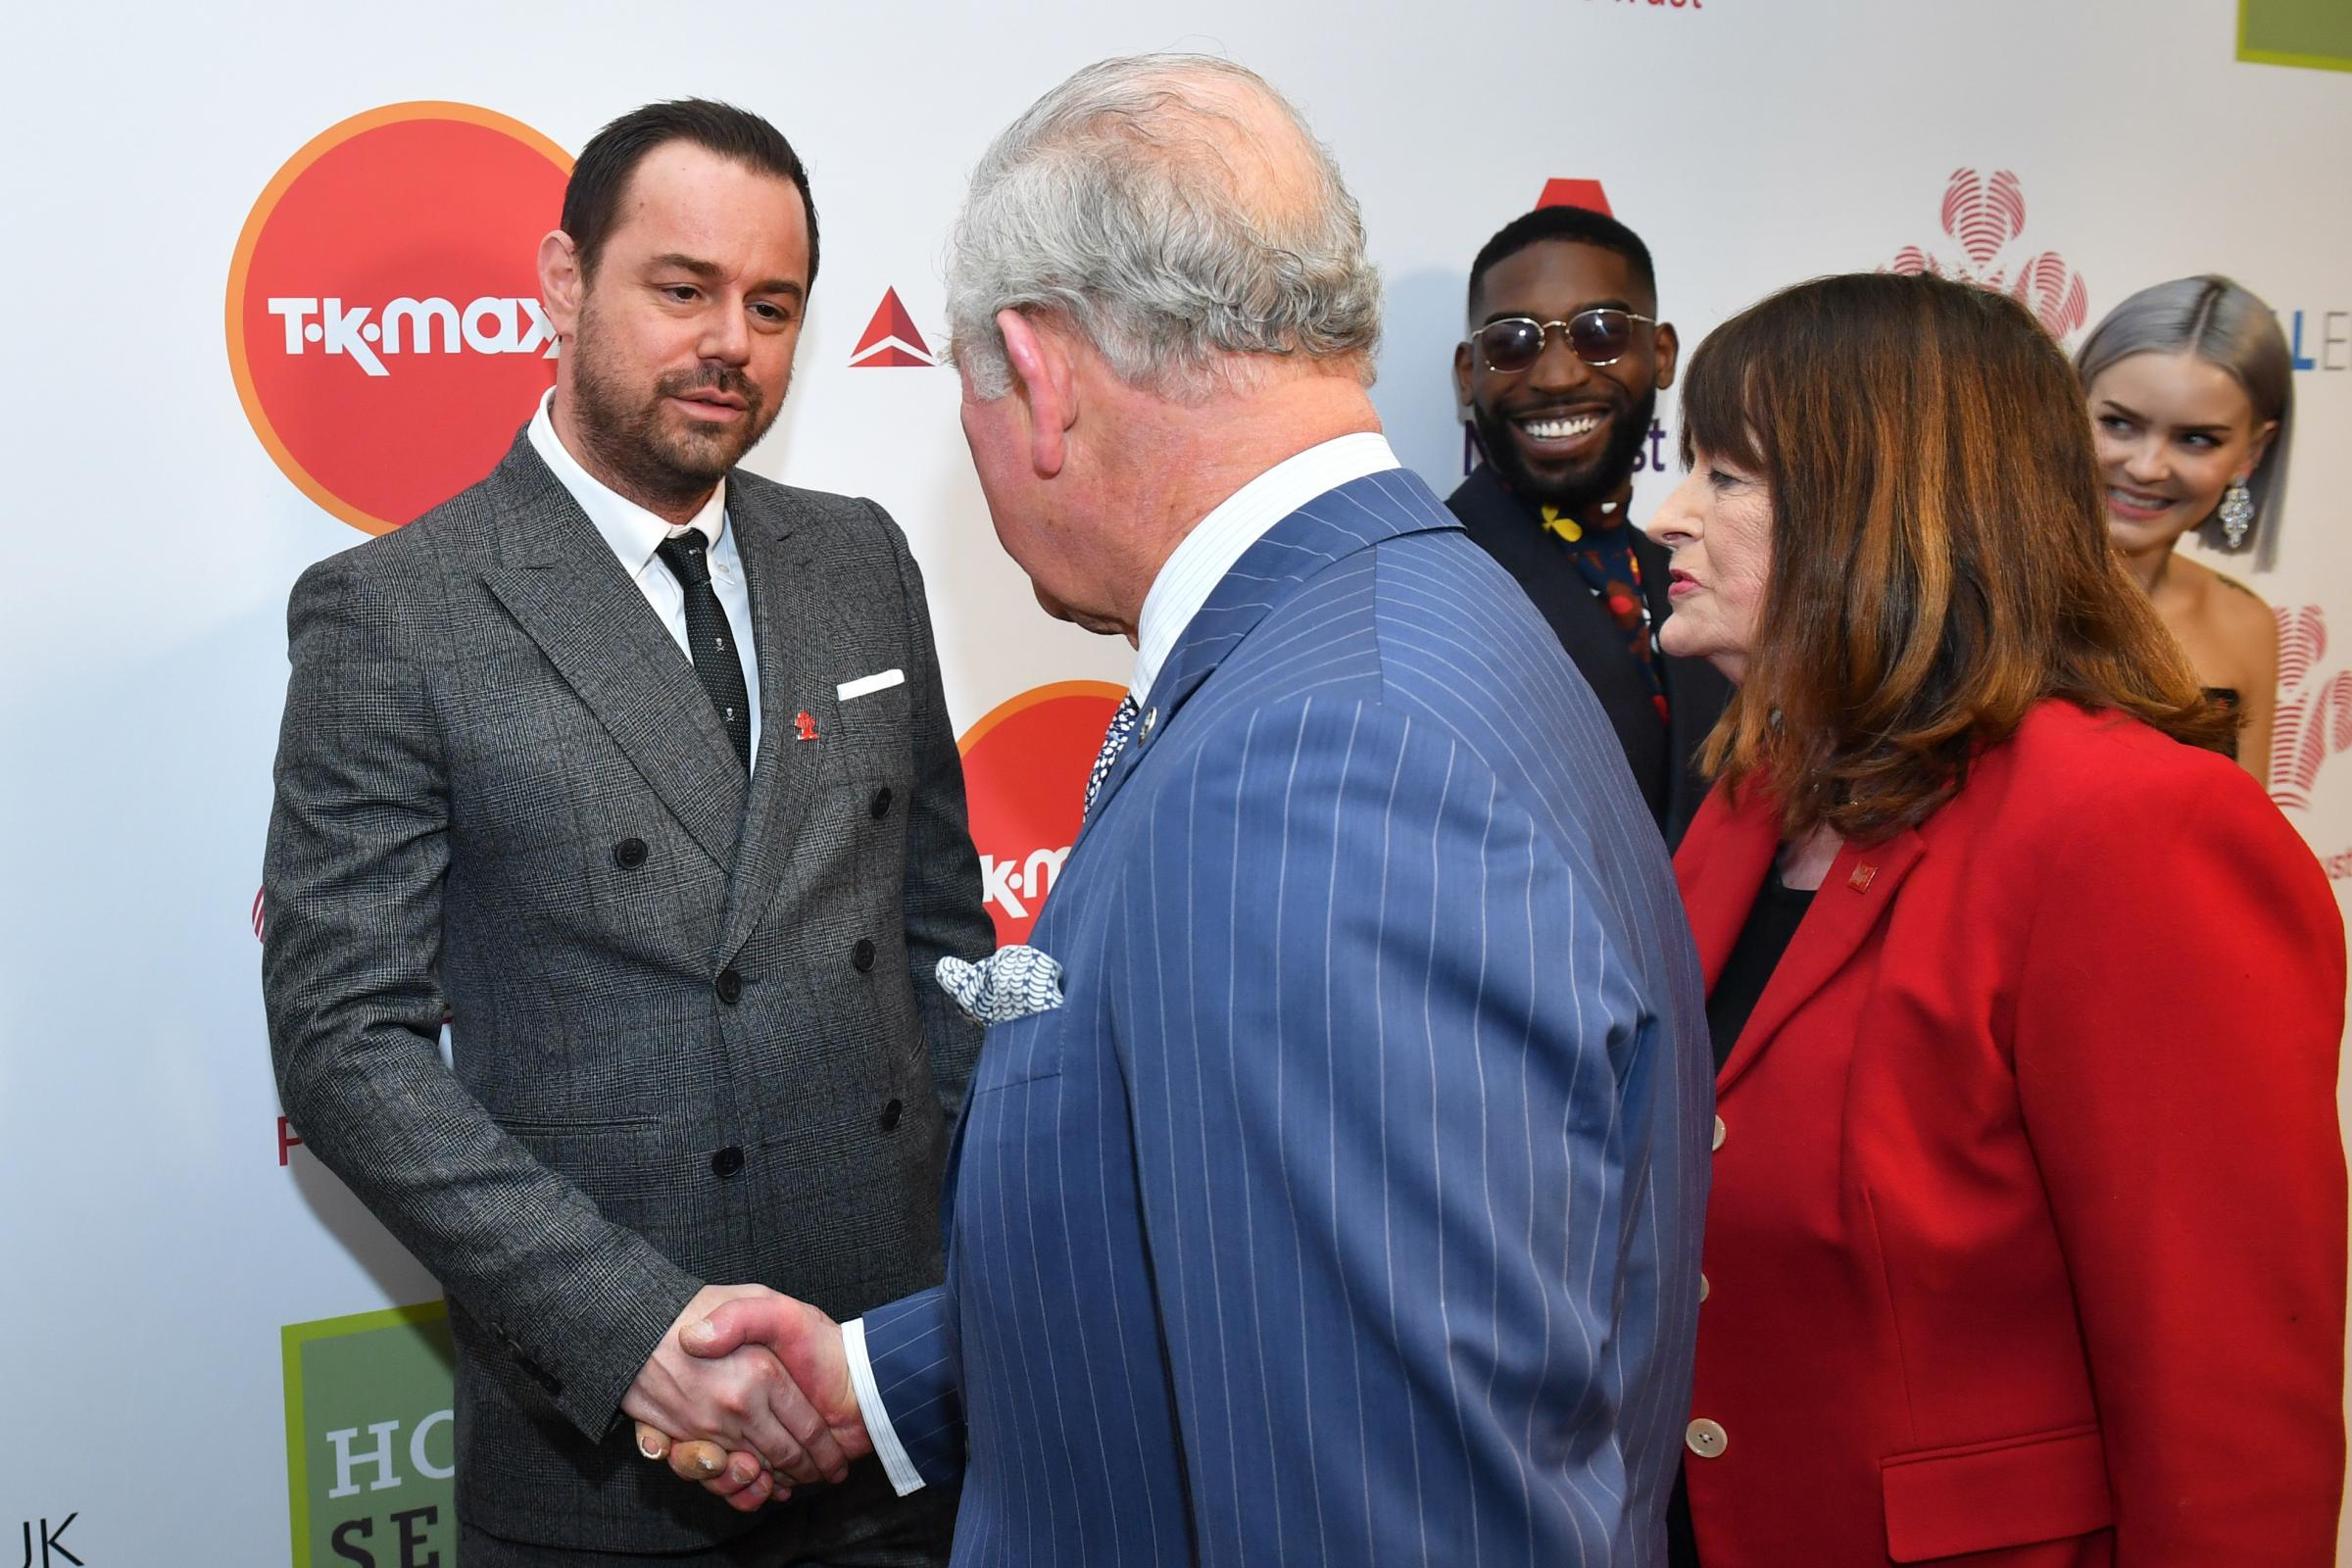 Danny Dyer met the Prince of Wales at the annual Prince's Trust Awards at the London Palladium